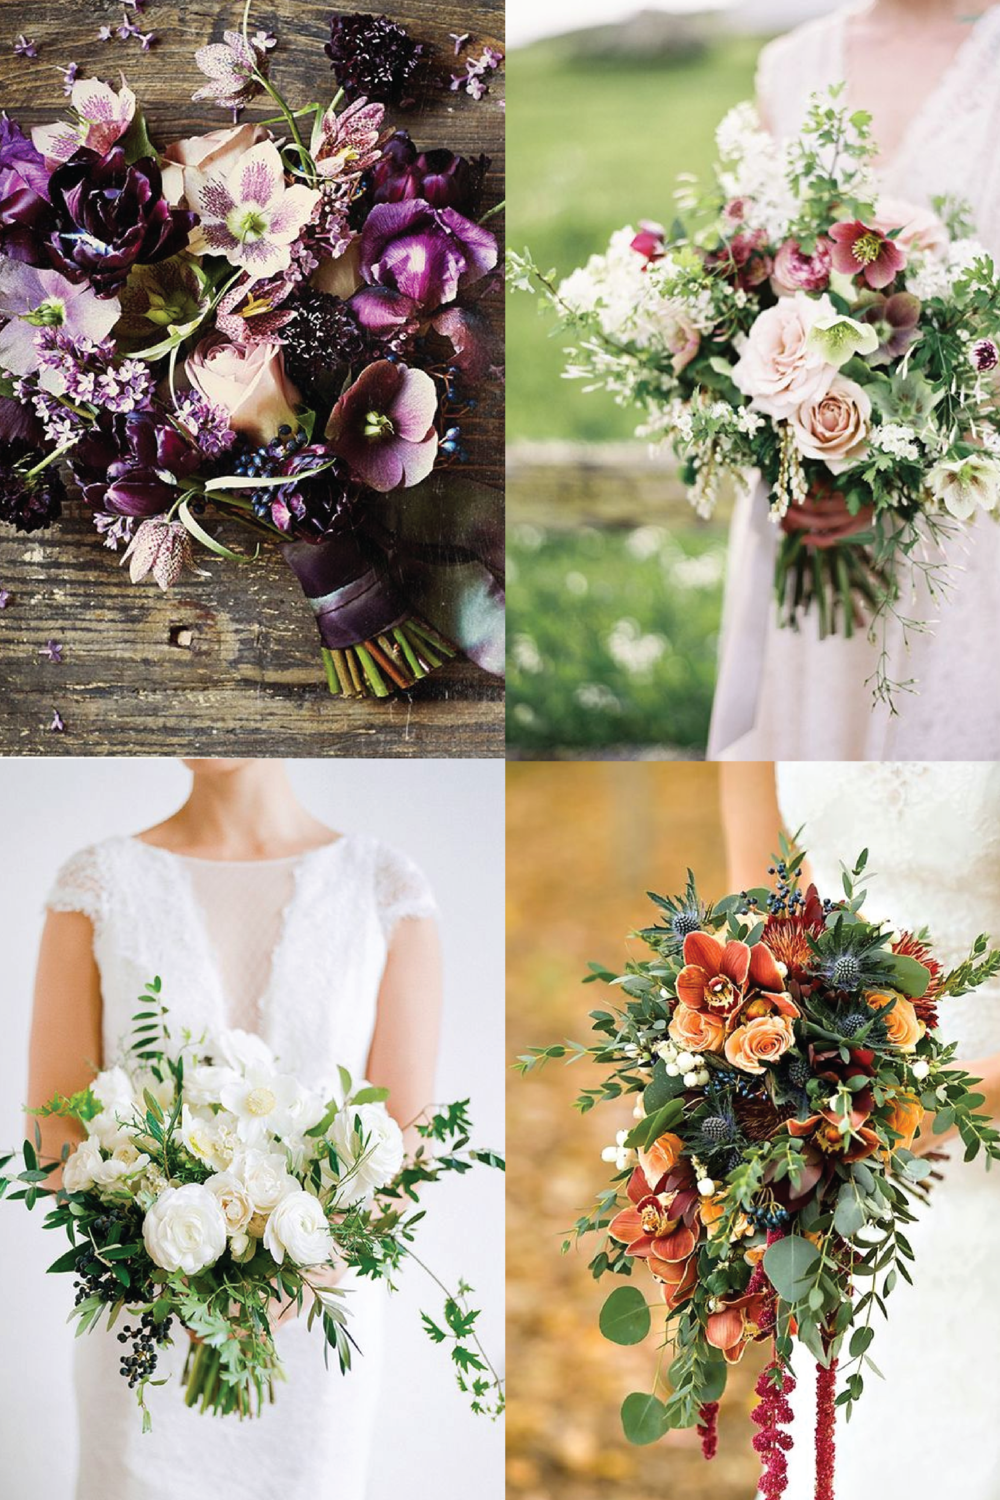 From clockwise, from top left: flowers by Sullivan Owen; flowers by Fleurs by Fallon Shea and photo by Jen Huang; flowers by La Fleuriste and photo by Christina McNeill; flowers by Prestige Floral and photo by Modern Jane Design.